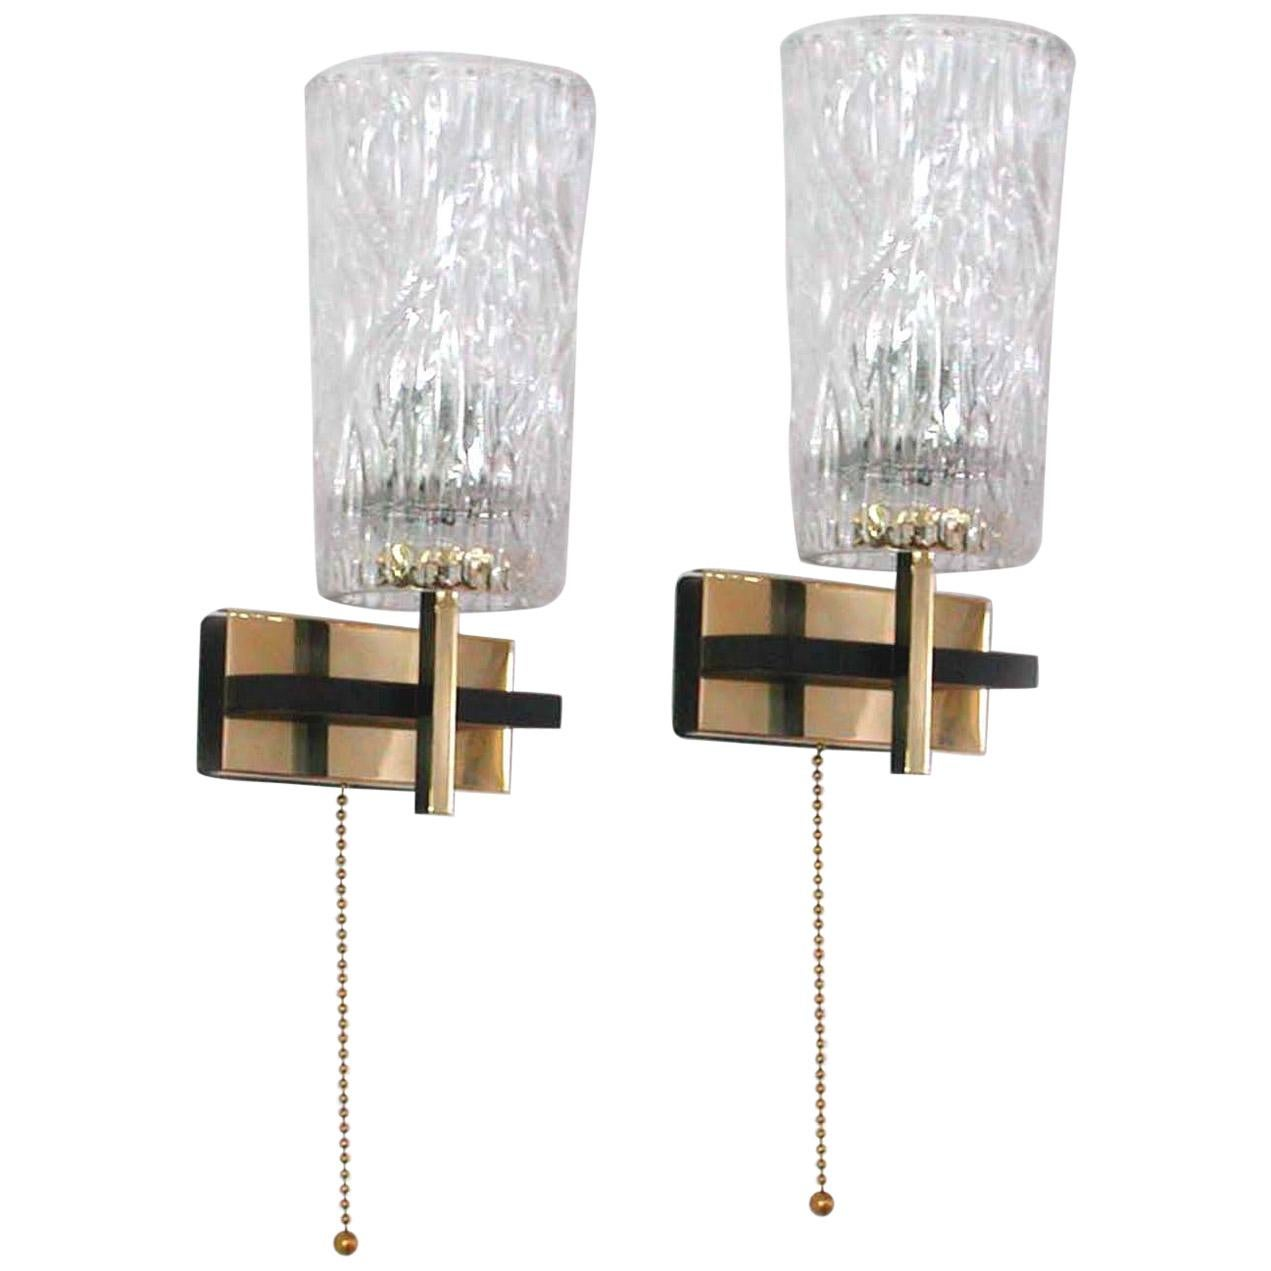 Midcentury French Brass and Textured Glass Sconces by Maison Arlus, 1950s